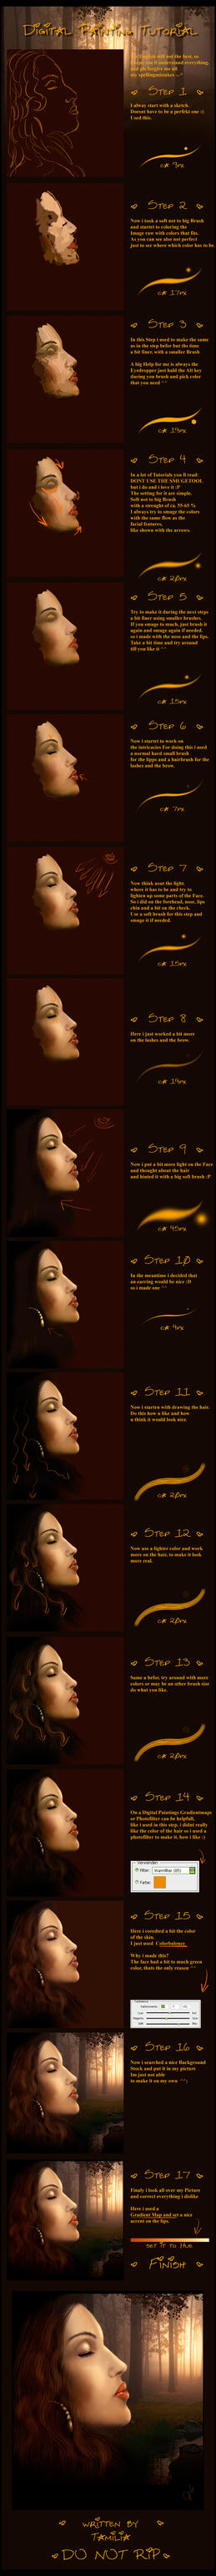 Digital Painting Tutorial by Tamilia